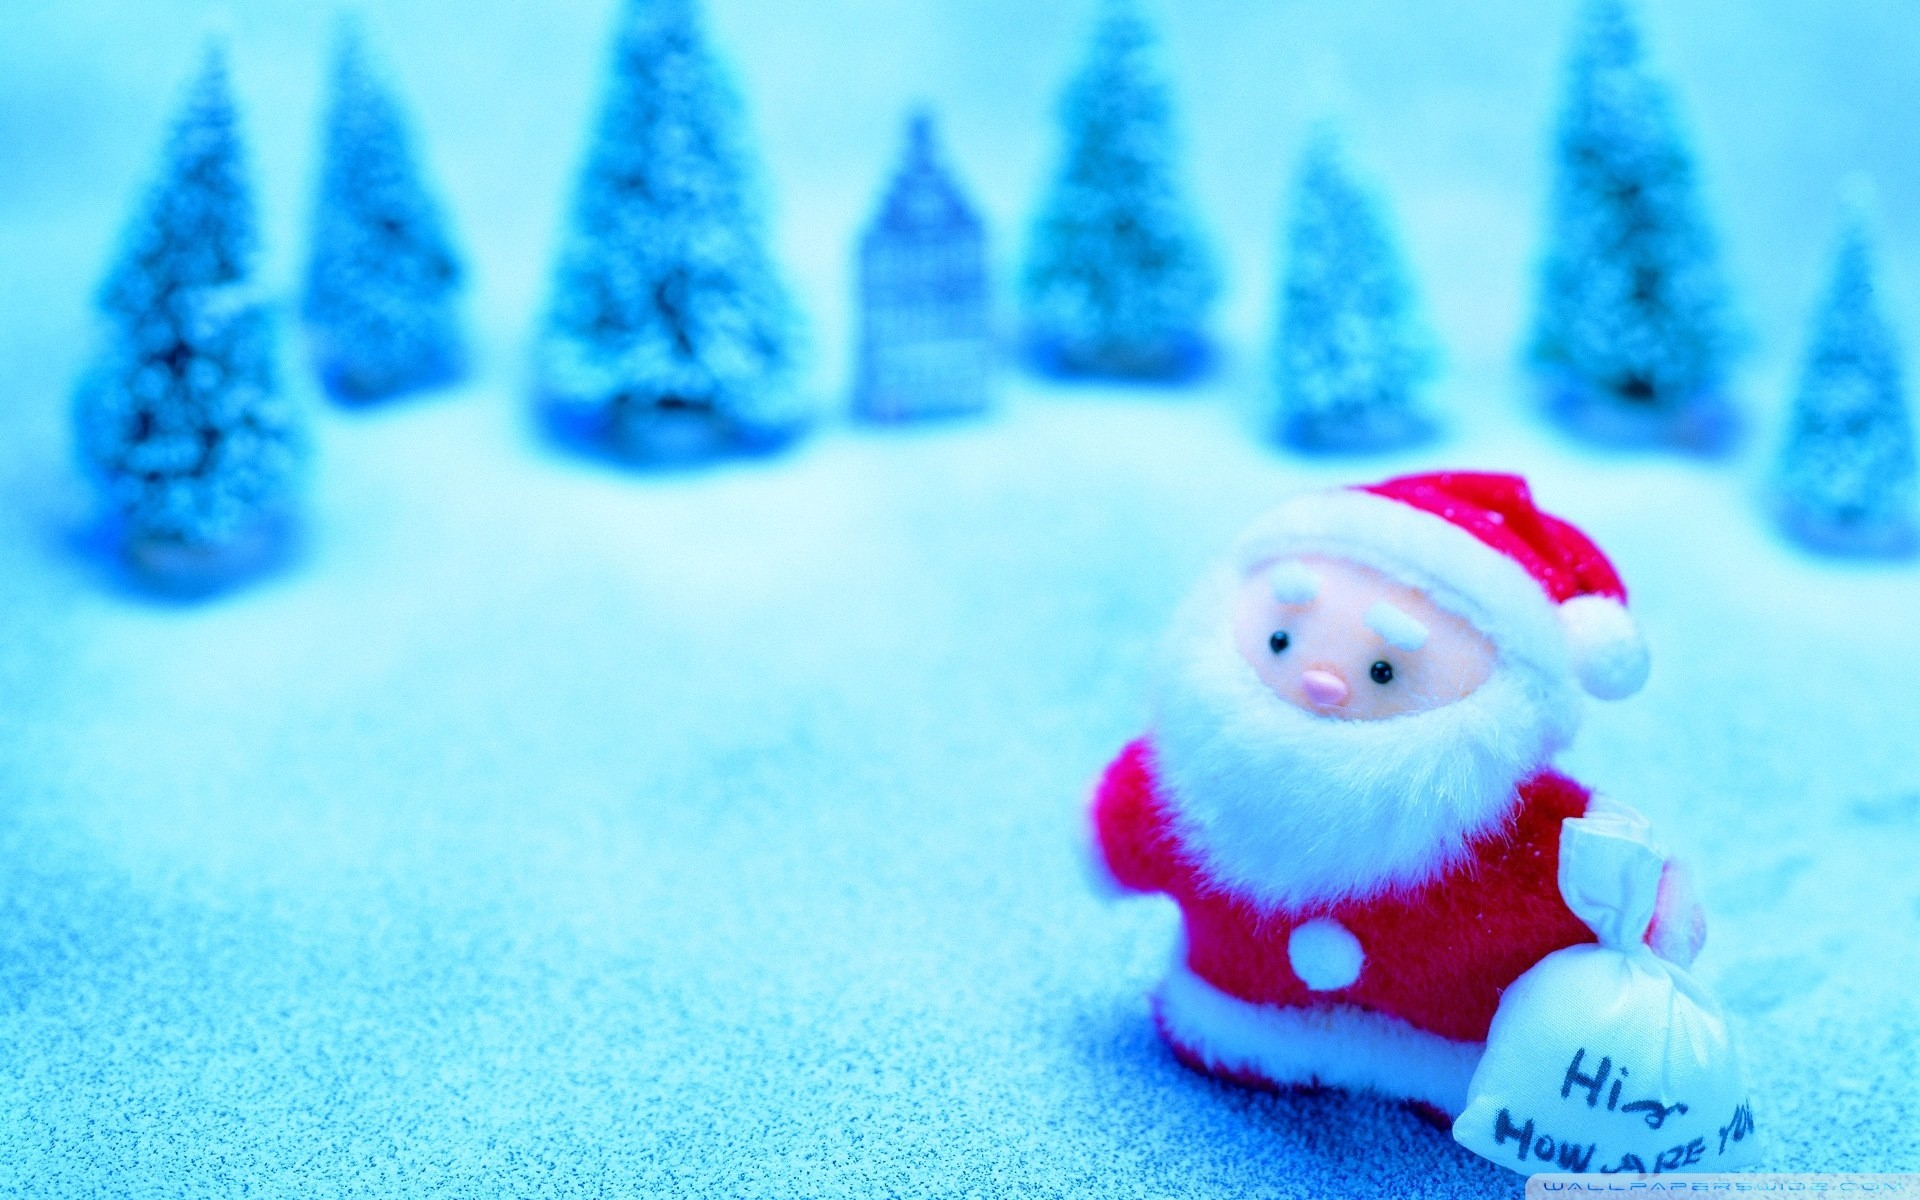 Cute Wallpapers For Mobile: Cute Christmas Desktop Backgrounds ·① WallpaperTag